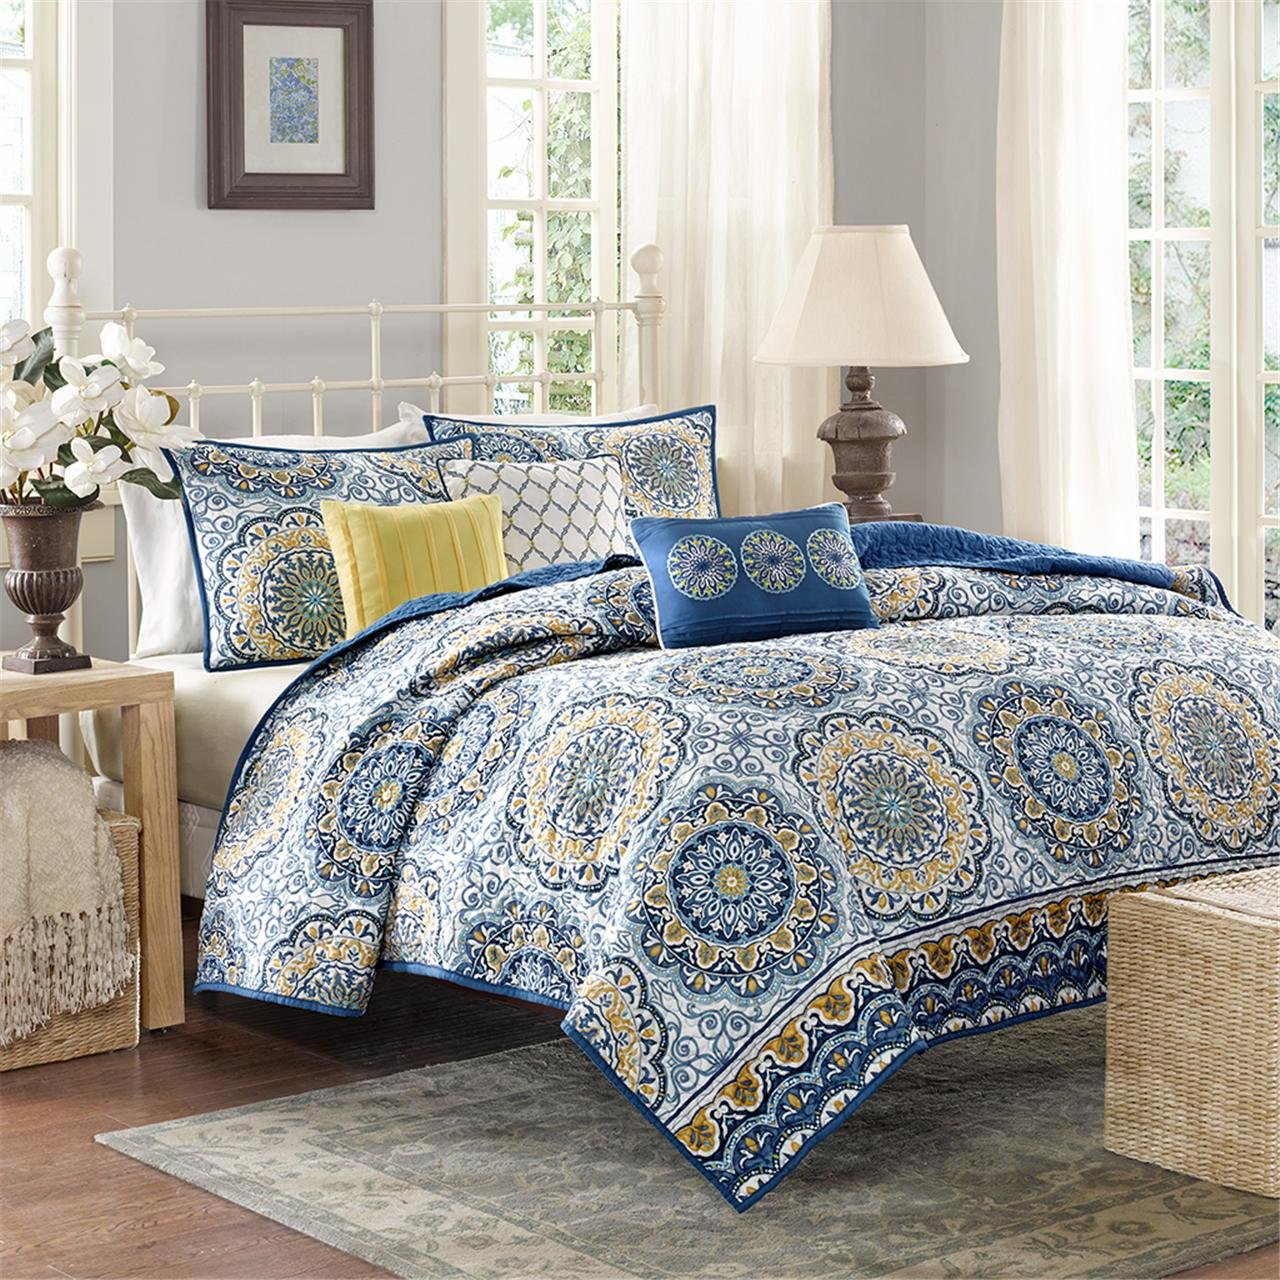 Madison Park MP13-783 Tangiers 6 Piece Quilted Coverlet Set, Queen, Blue